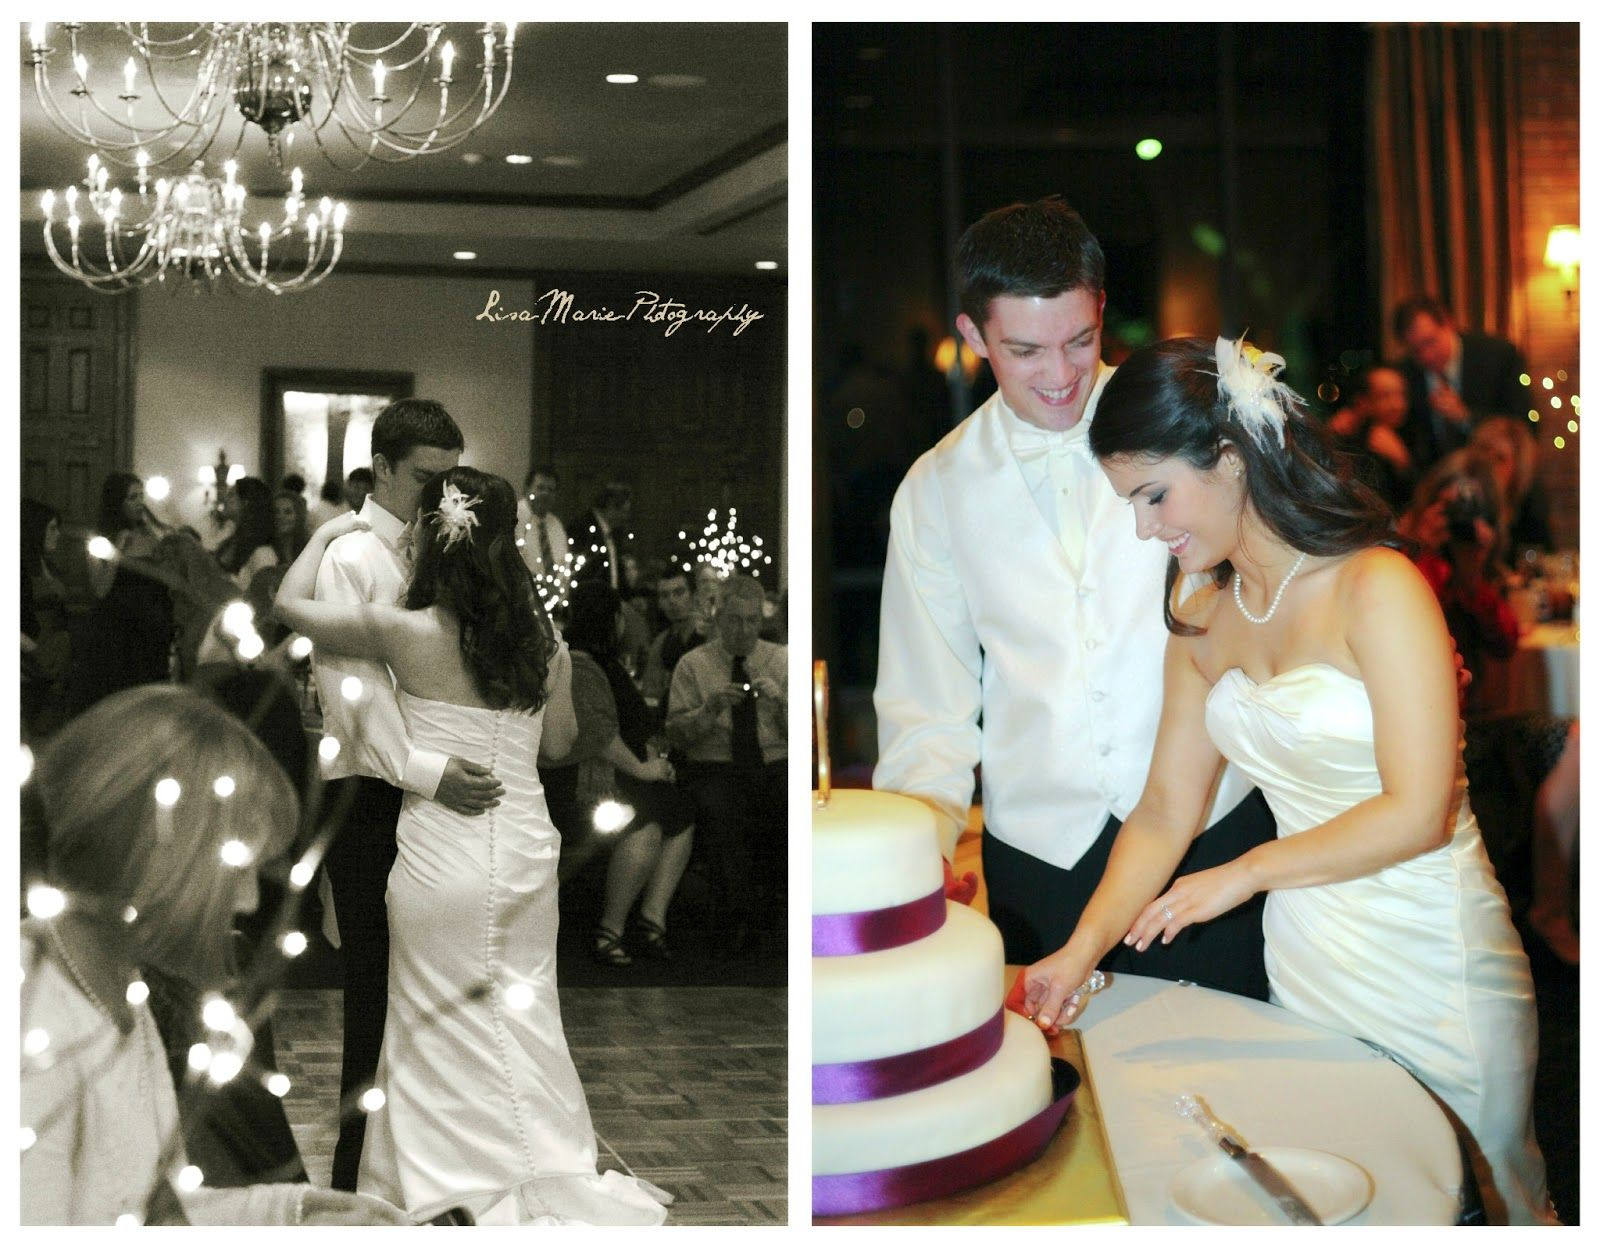 Three Things A Bride Can Do To Have The Wedding Reception Pictures